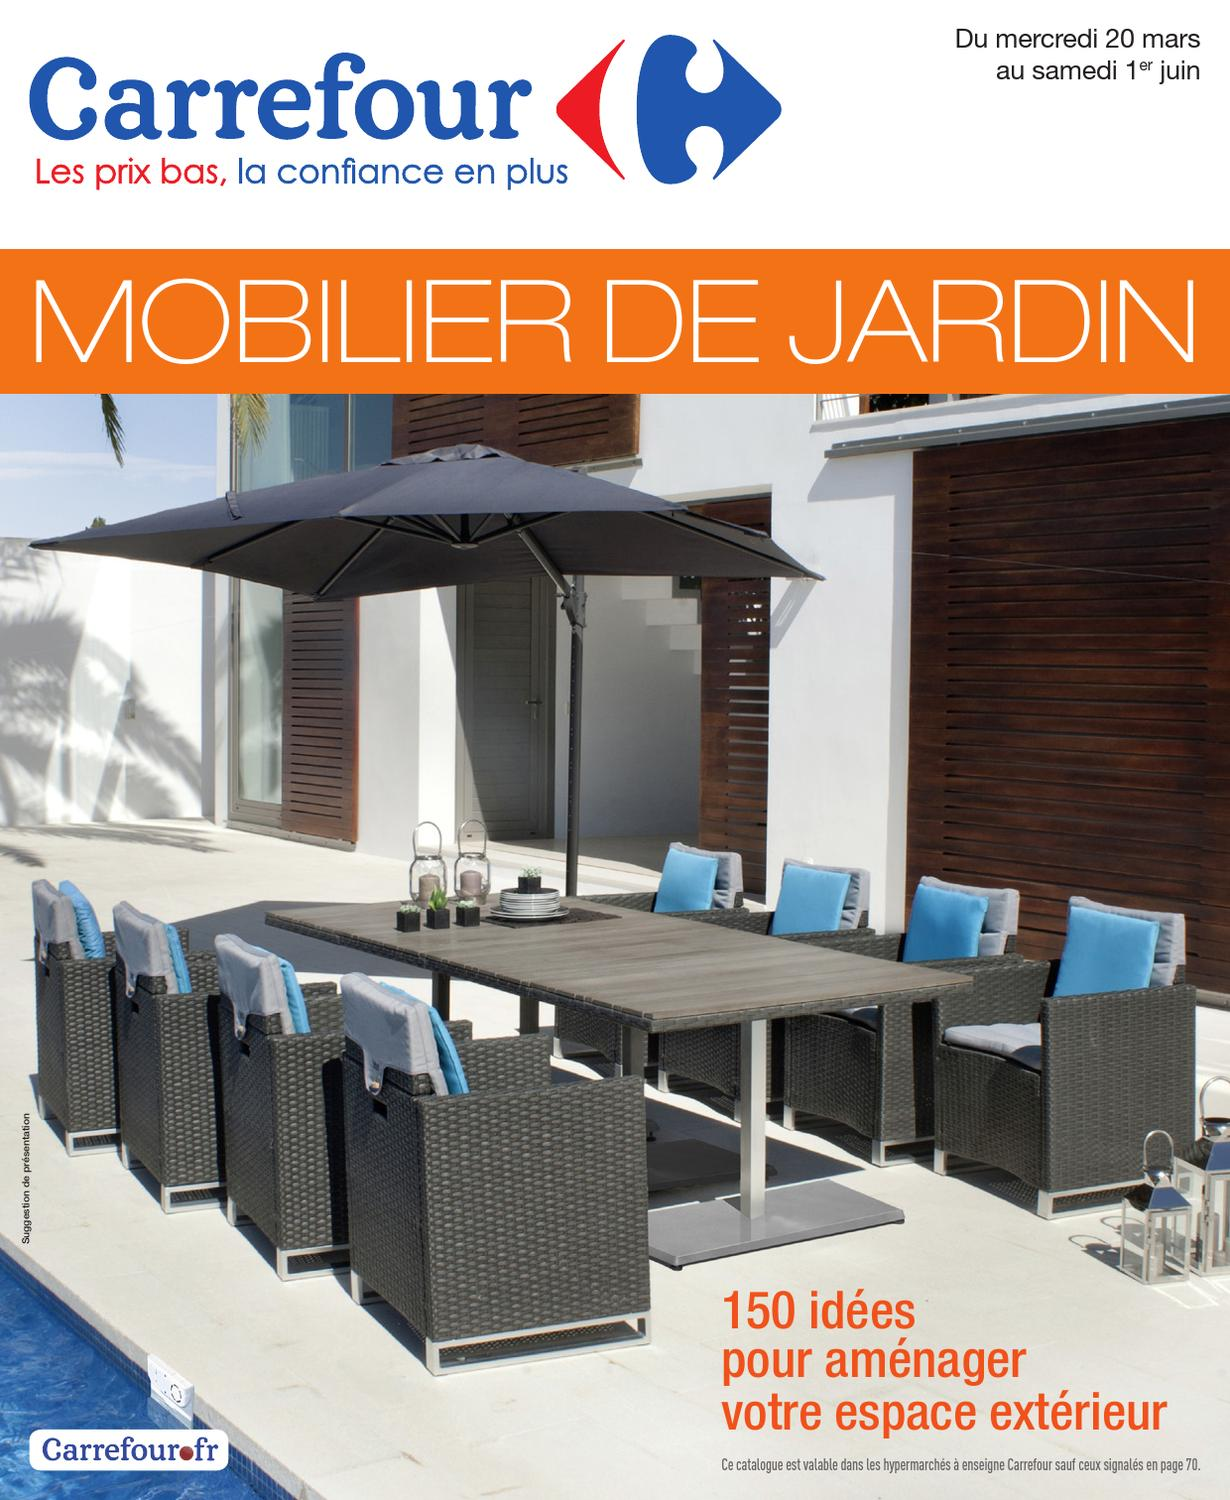 Carrefour 20 3 1 6 2013 by proomo france issuu for Salon de jardin blanc carrefour